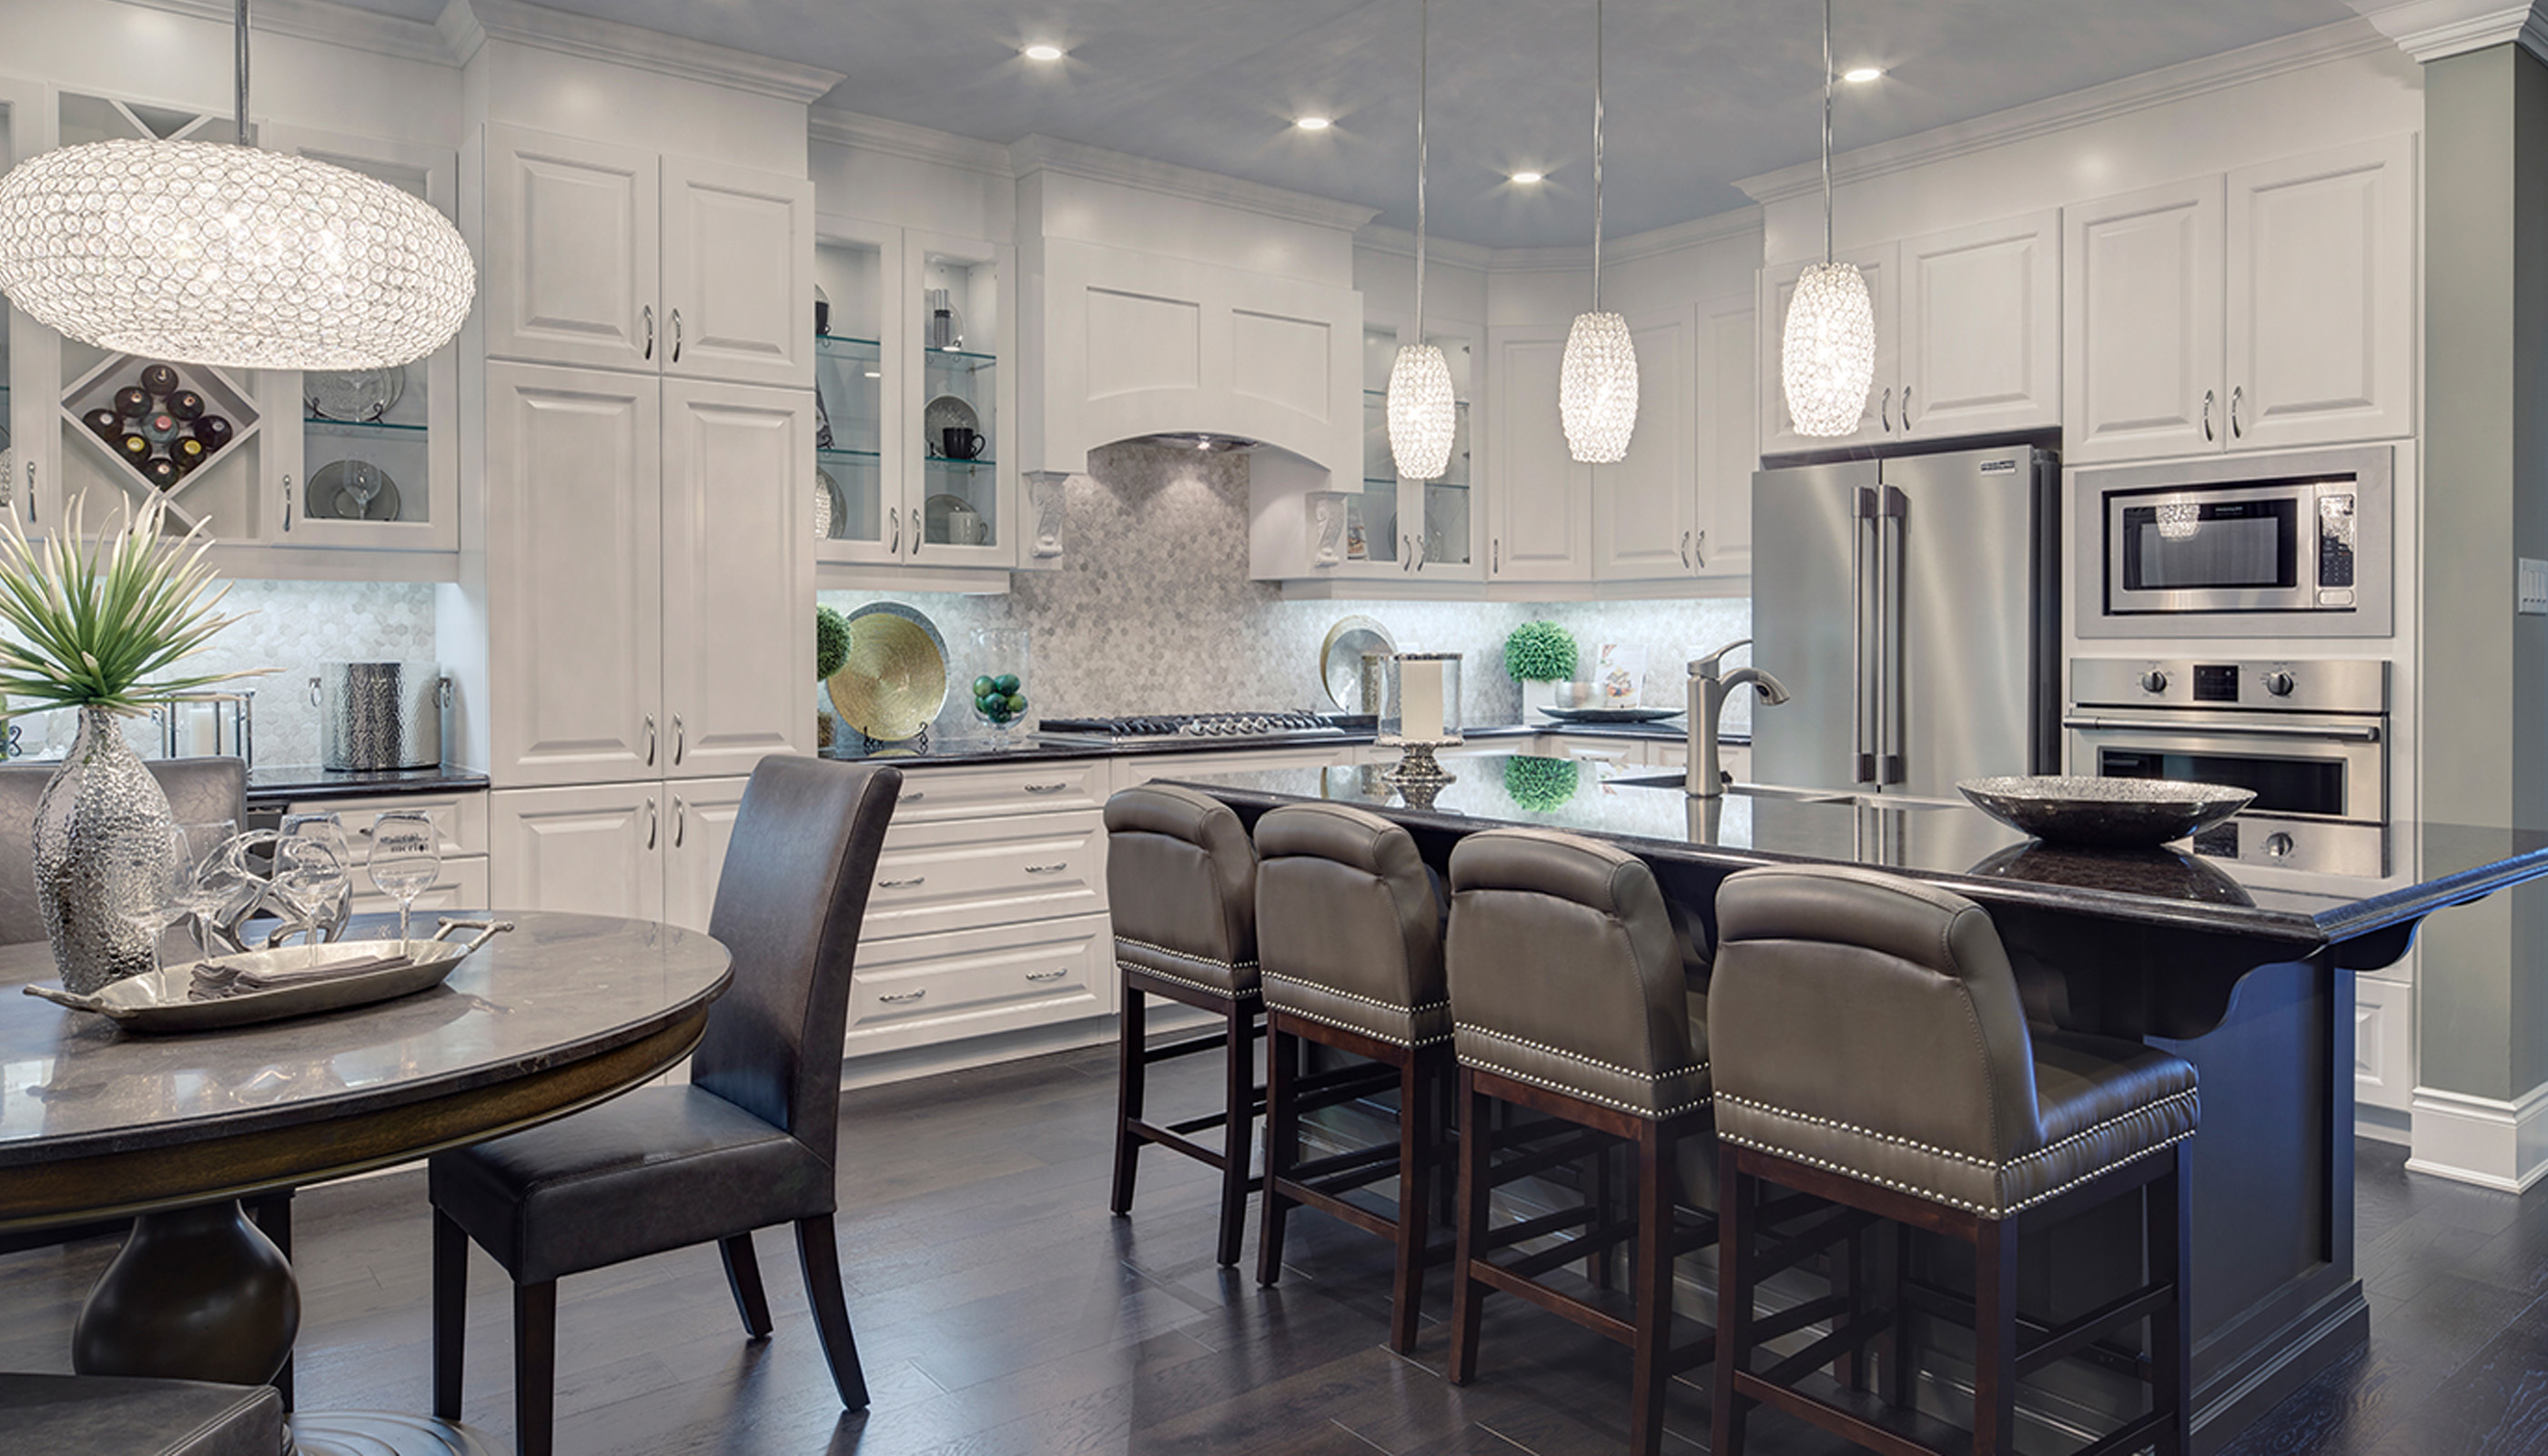 Kitchen in Naples-Fort Myers Florida by Mattamy Homes